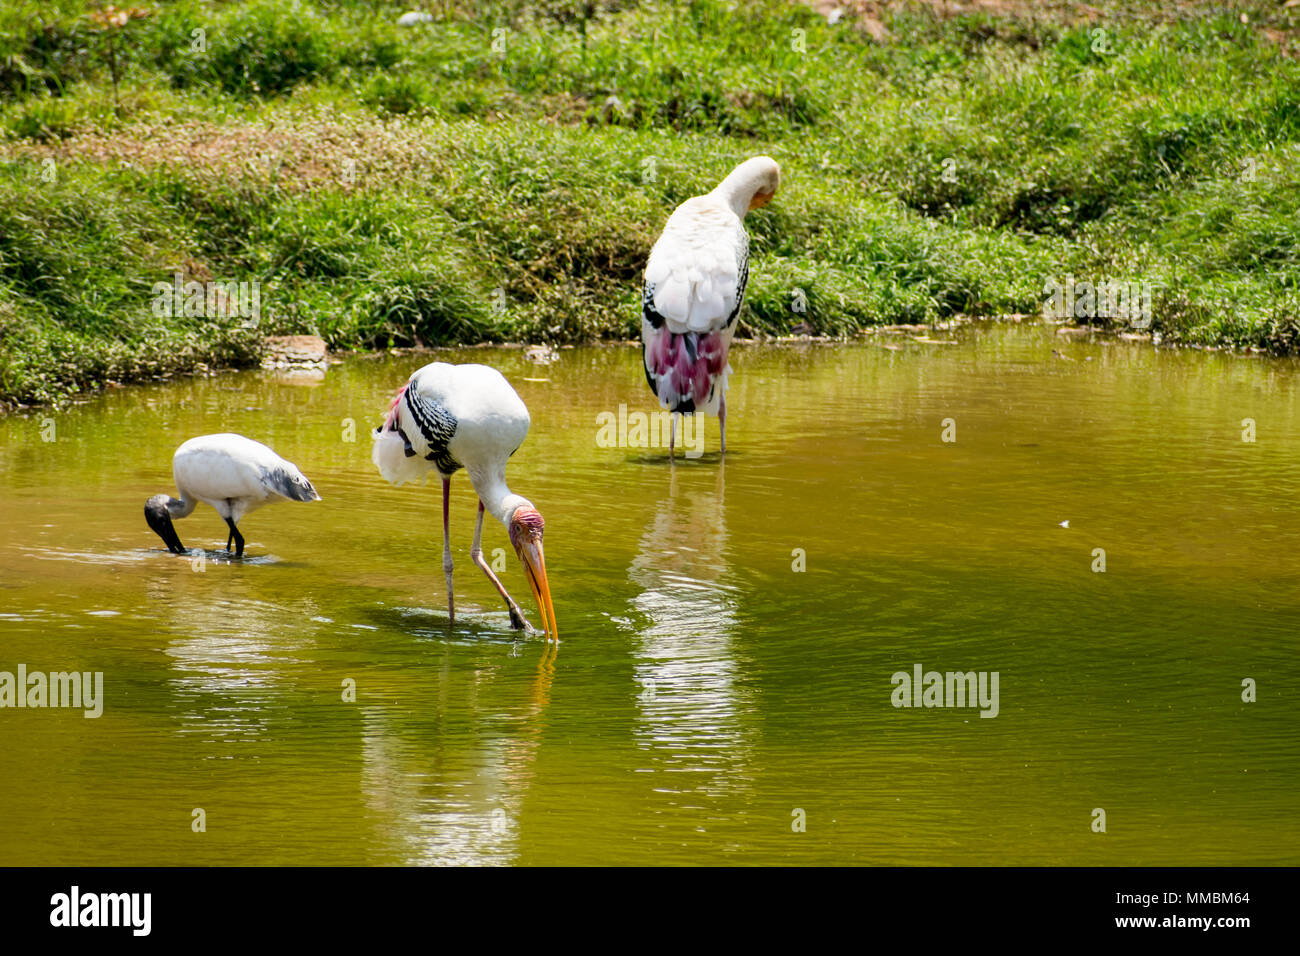 A lot of painted storks searching fish on water at zoo close view. Stock Photo